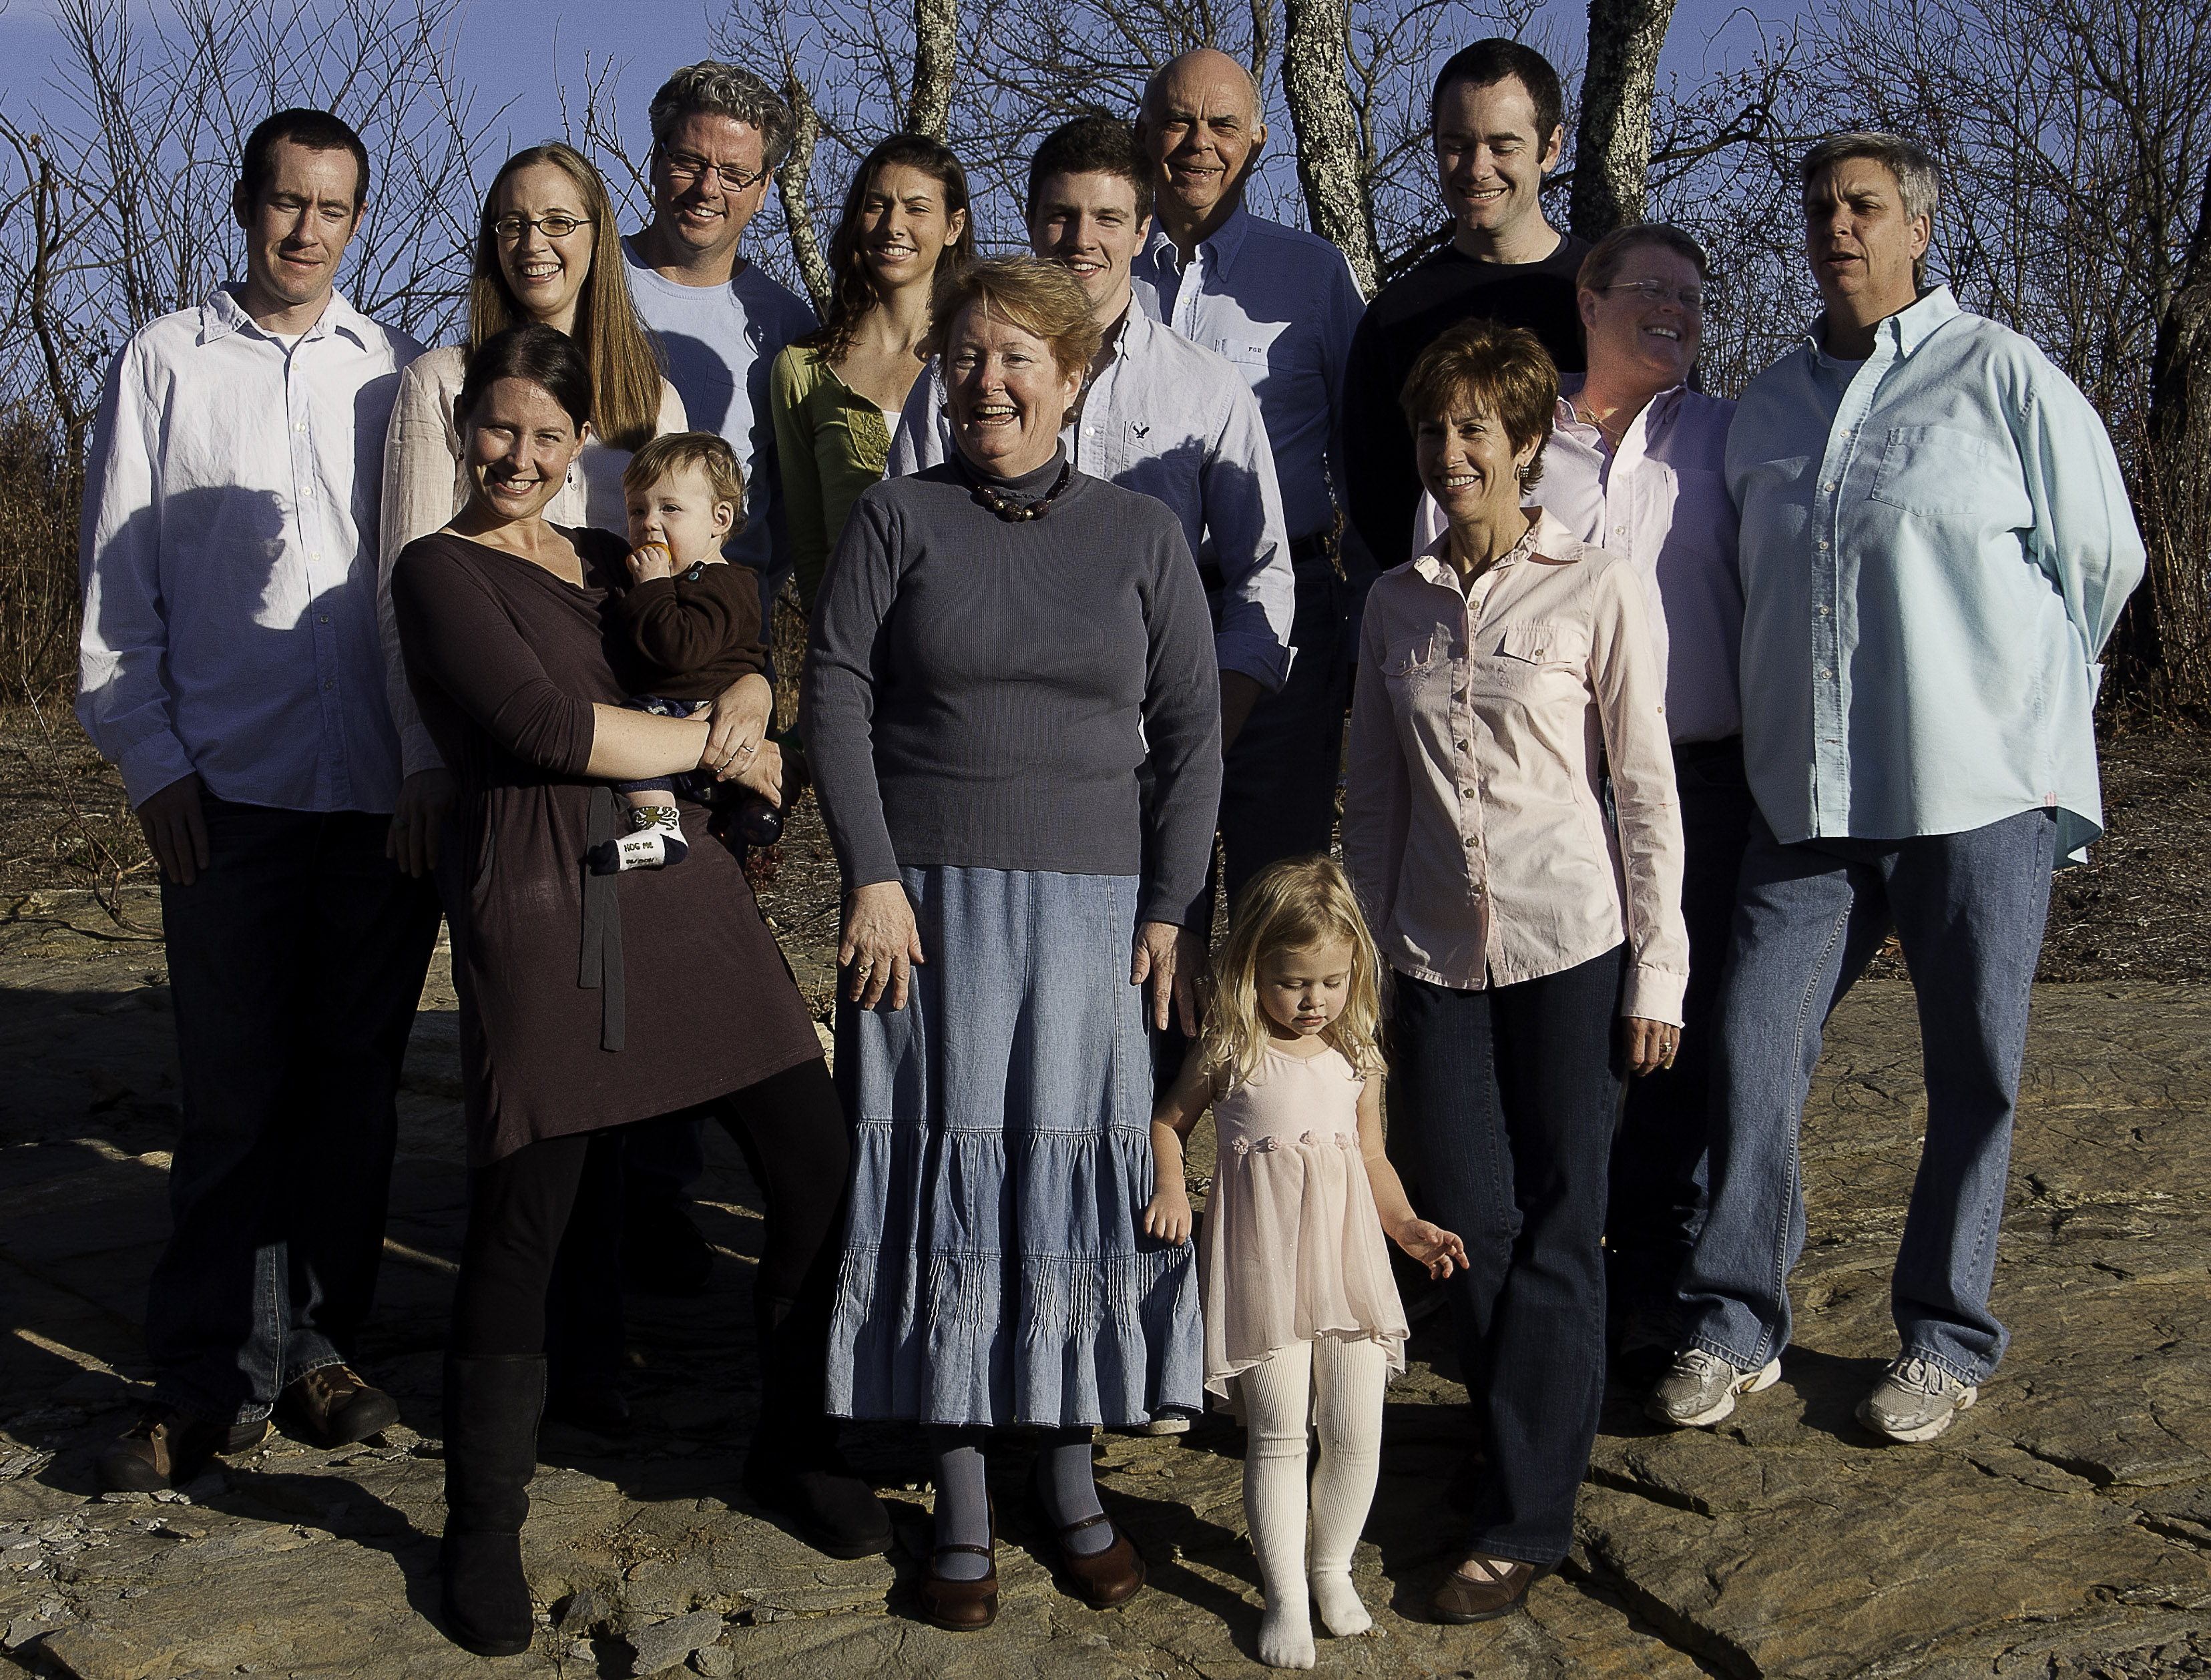 The Multi-generational Family is Trending